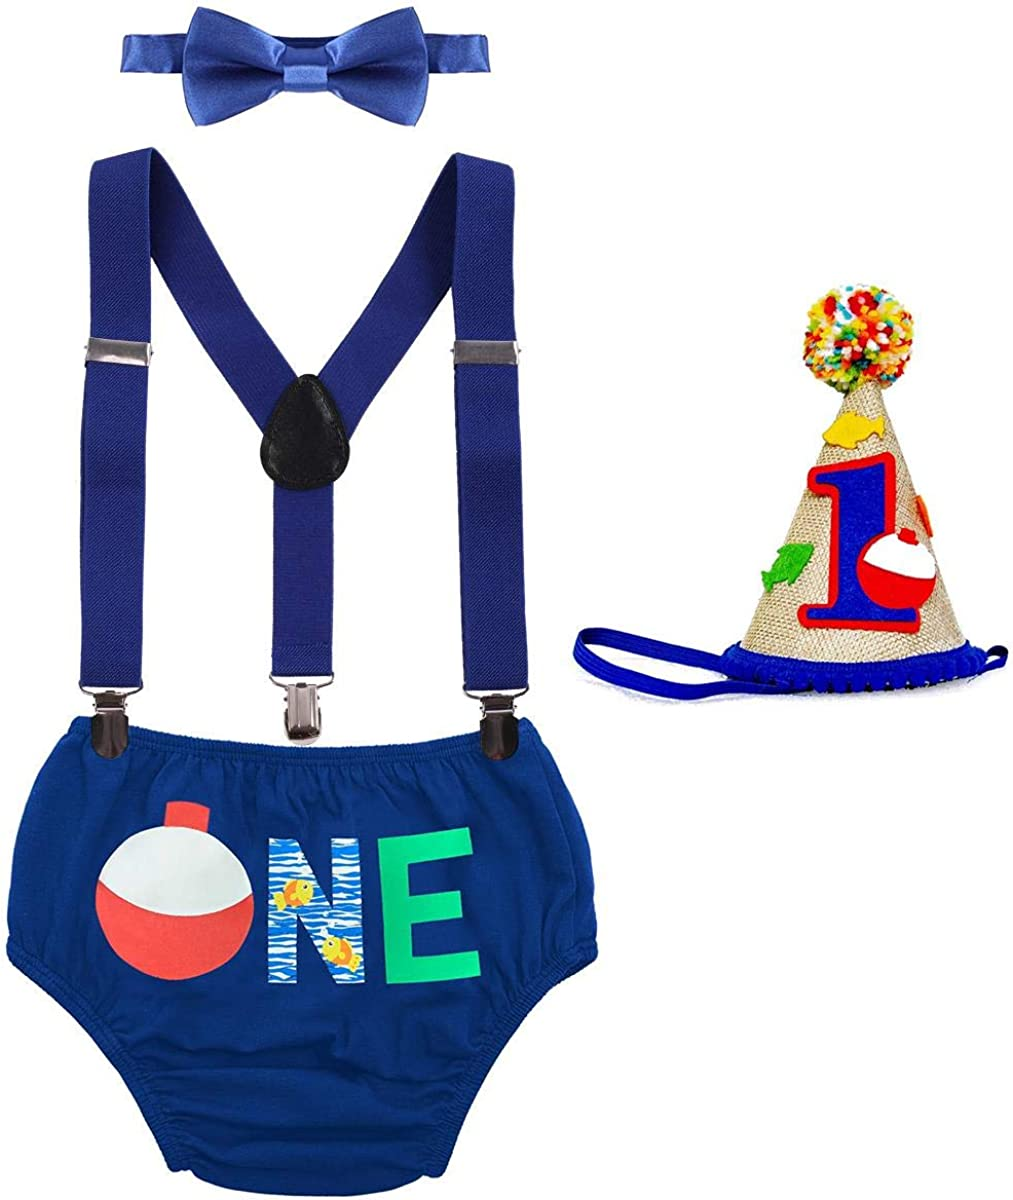 Bow Tie Pants Headband 4pcs Set Photo Props ODASDO Baby Boy 1st // 2nd Birthday Cake Smash Outfit Suspender